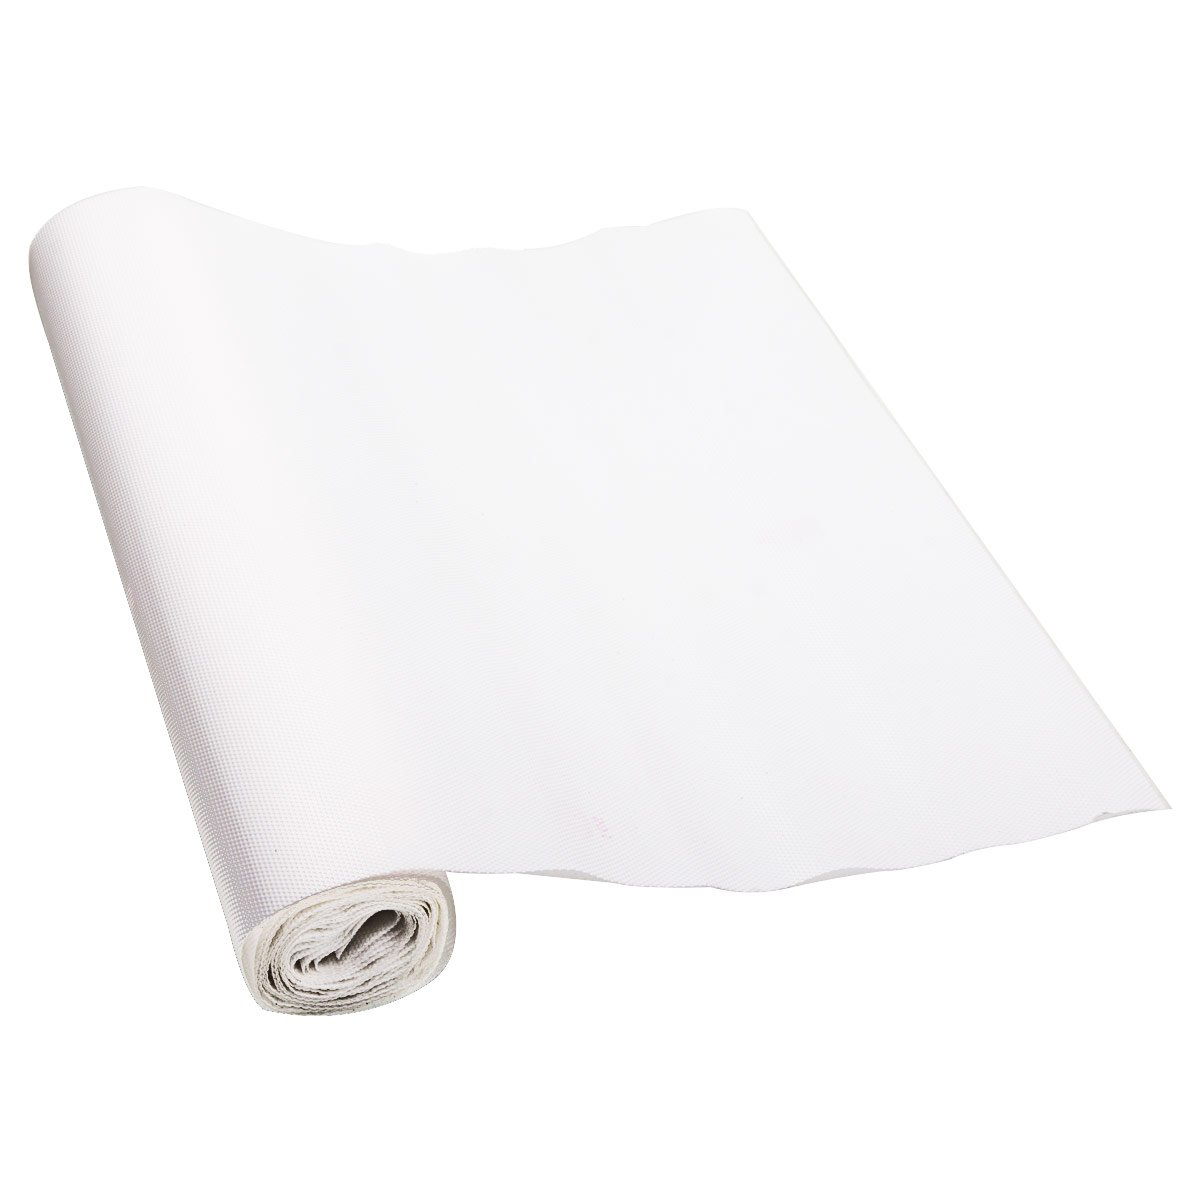 Heat Transfer Paper, ABUFF Clear Heat transfer Tape for Hotfix Products like Rhinestones and Rhinestuds and More, 12inchx10ft/30cmx3m, White 4336883236